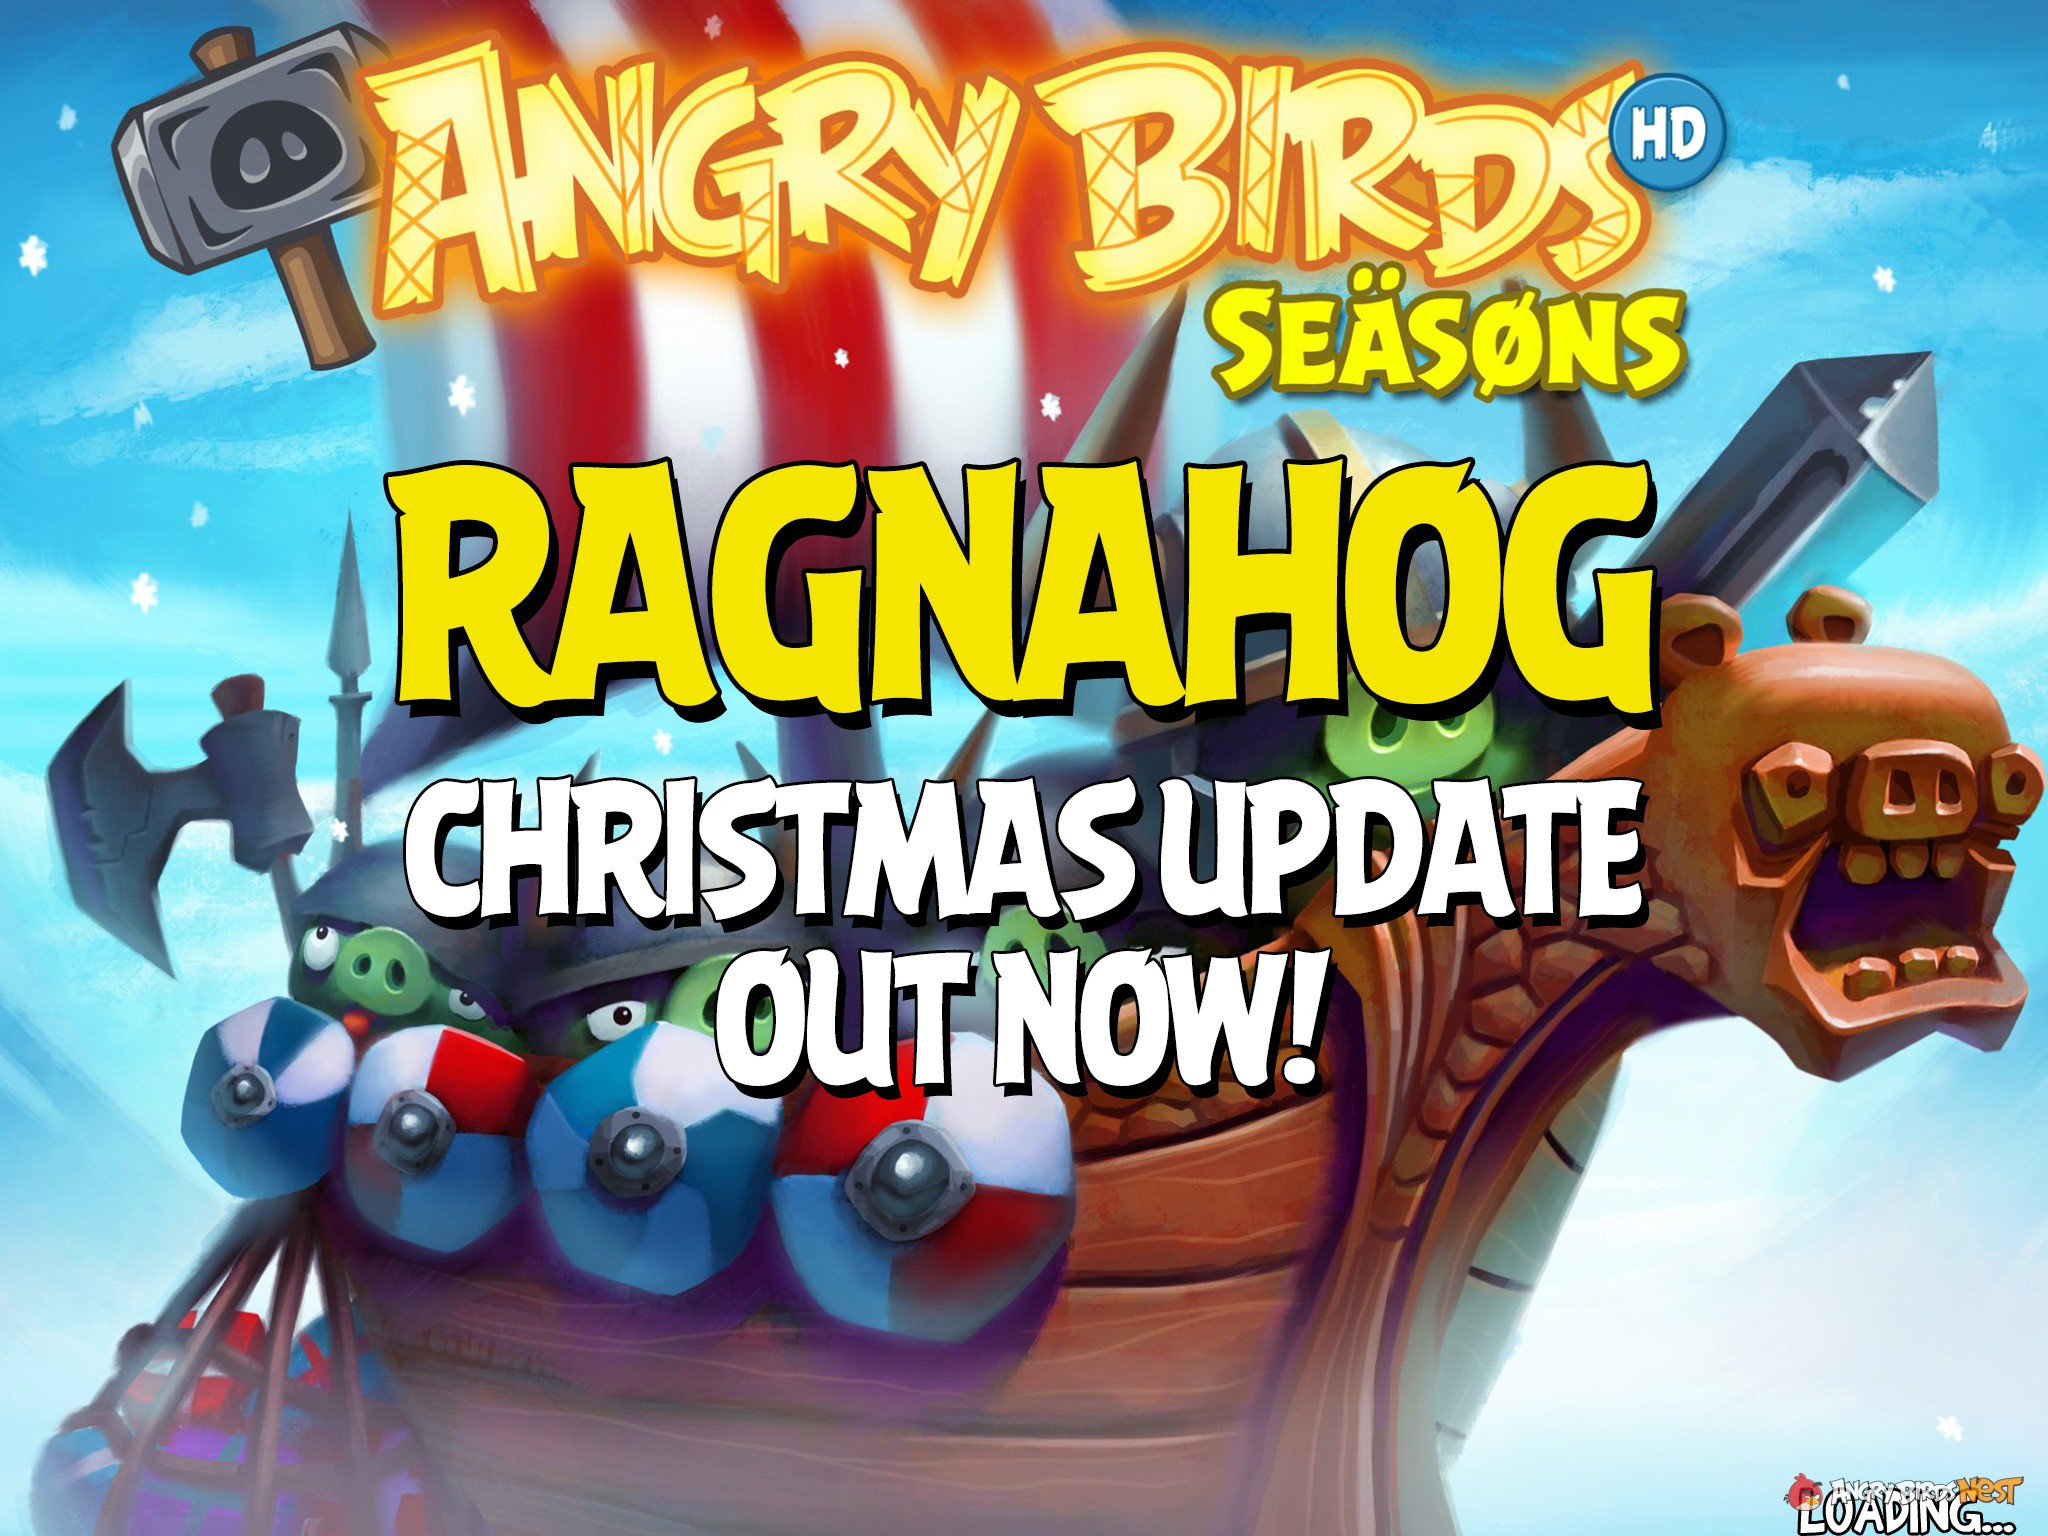 Angry Birds Seasons Ragnahog Christmas Update Out Now! | AngryBirdsNest